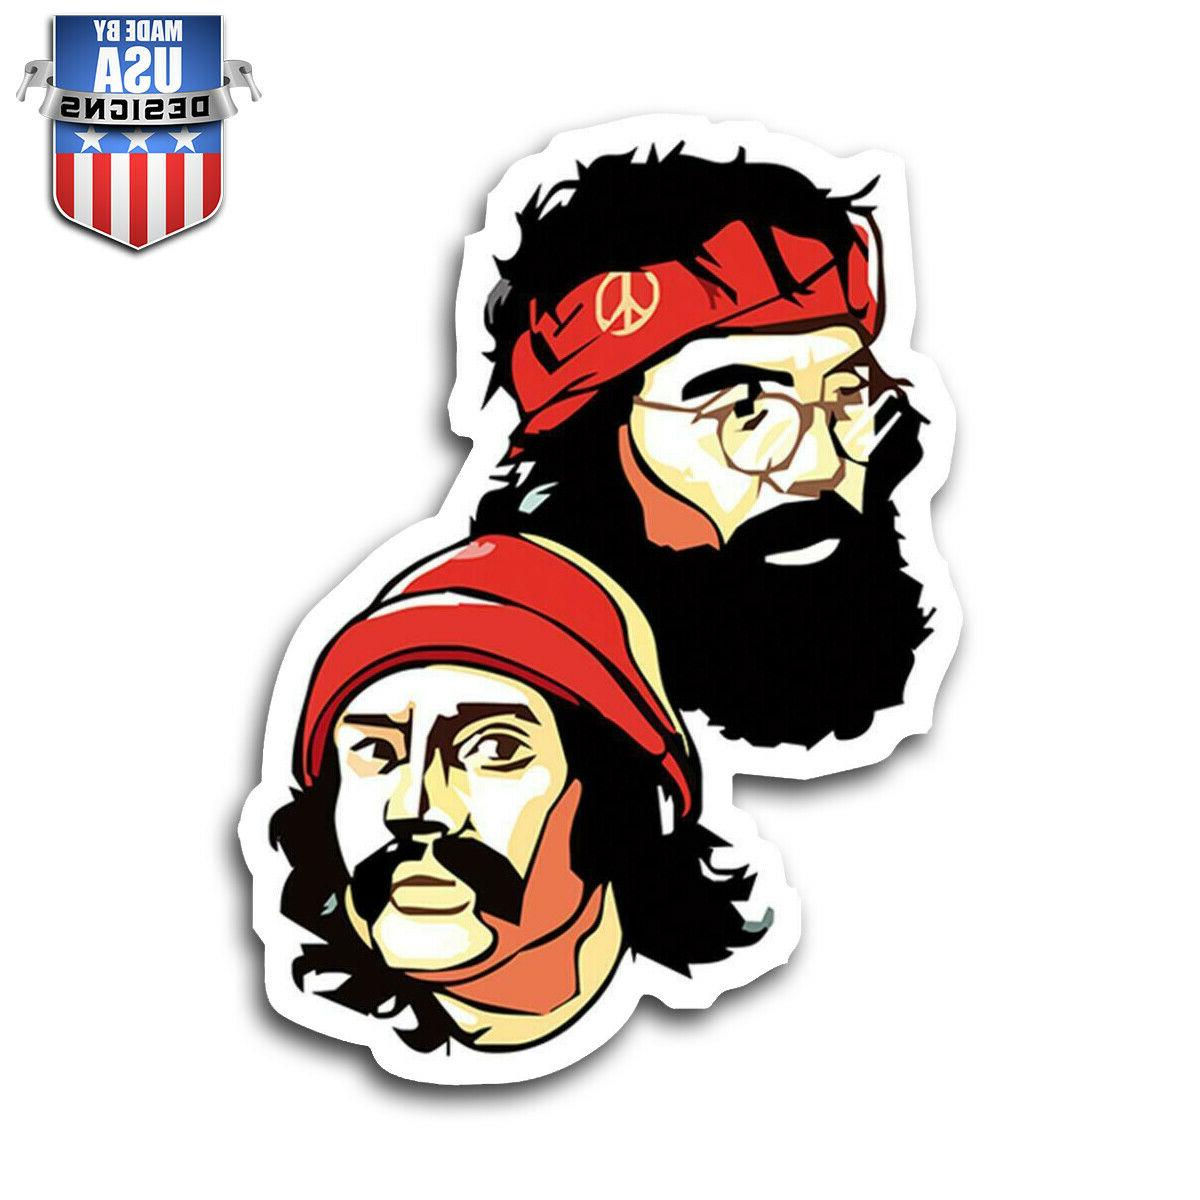 cheech and chong cool fun sticker decal